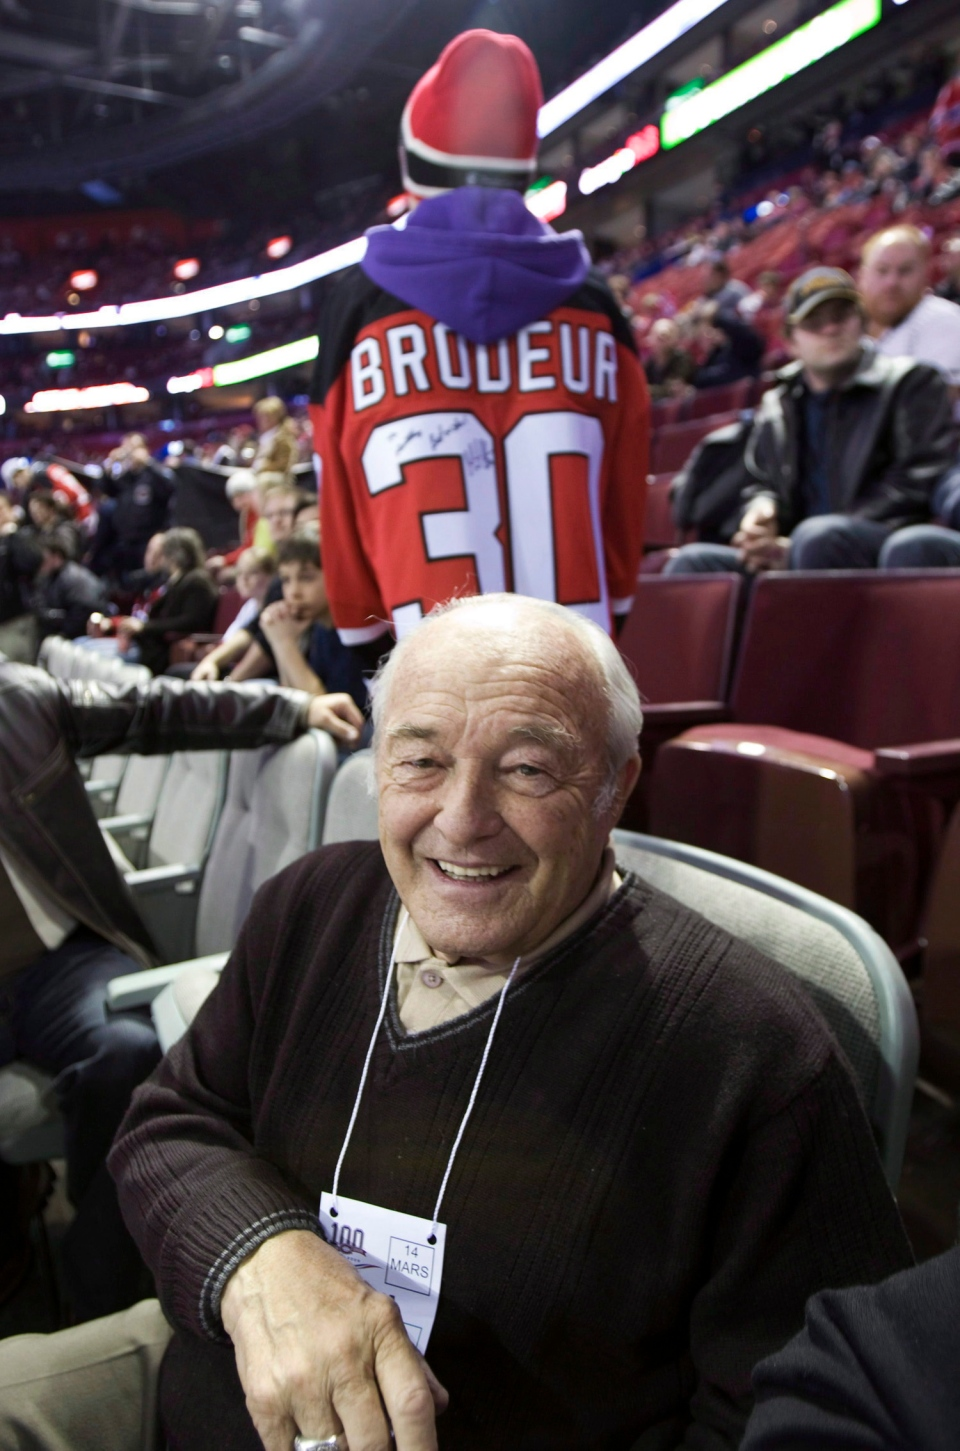 Sports Photographer Denis Brodeur Father Of Star Goalie Dies At 82